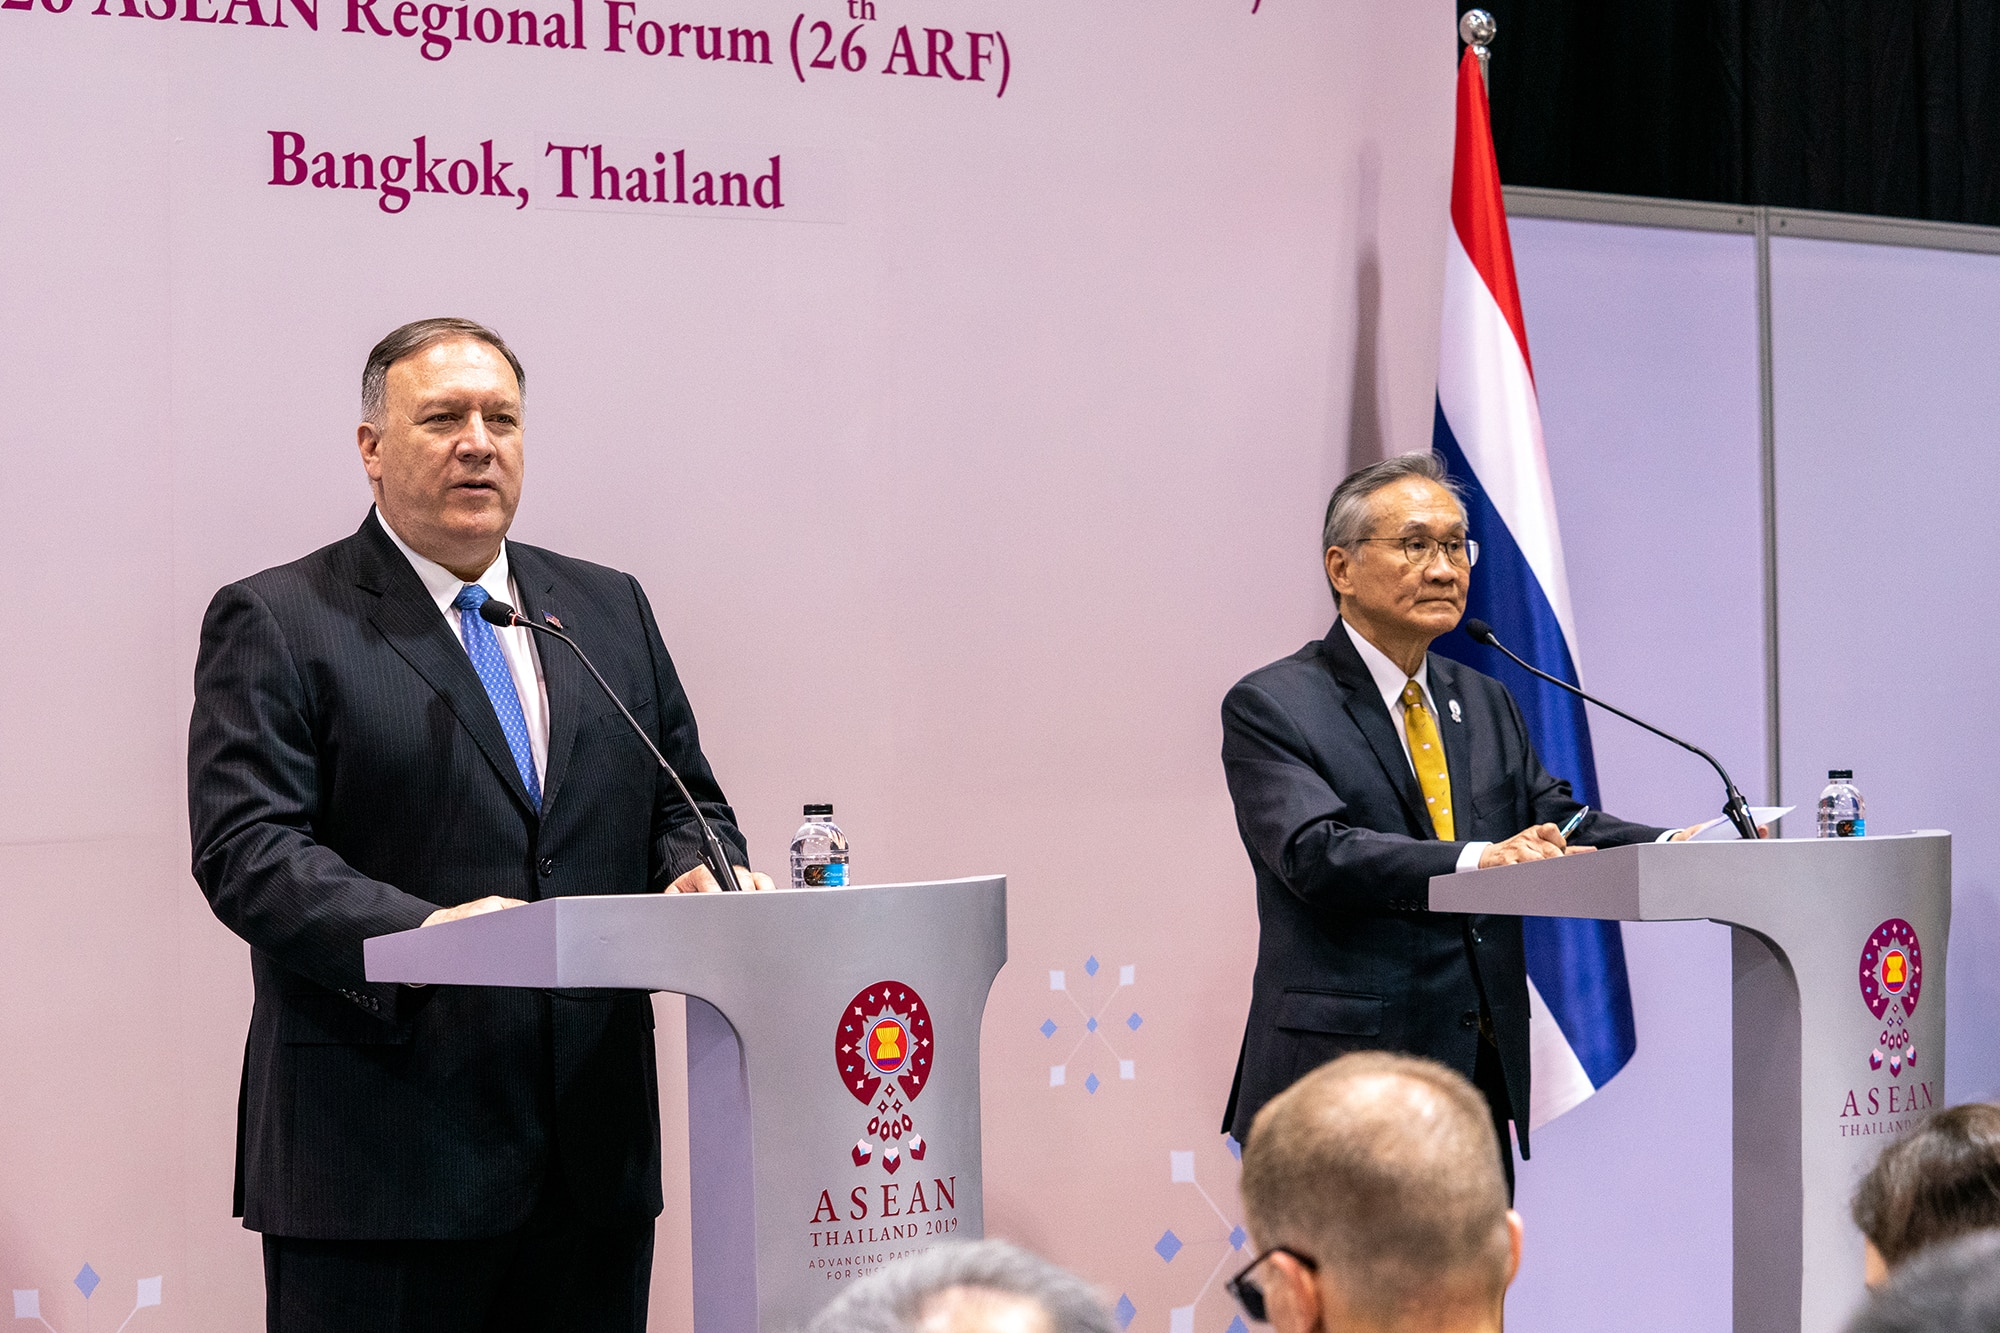 U.S. Secretary of State Michael R. Pompeo participates in a joint press availability with Thai Foreign Minister Don Pramudwinai at the start of the ASEAN Foreign Ministerial Meetings inside the Centara Grand Media Center in Bangkok, Thailand on August 1, 2019. (U.S. Department of State photo)